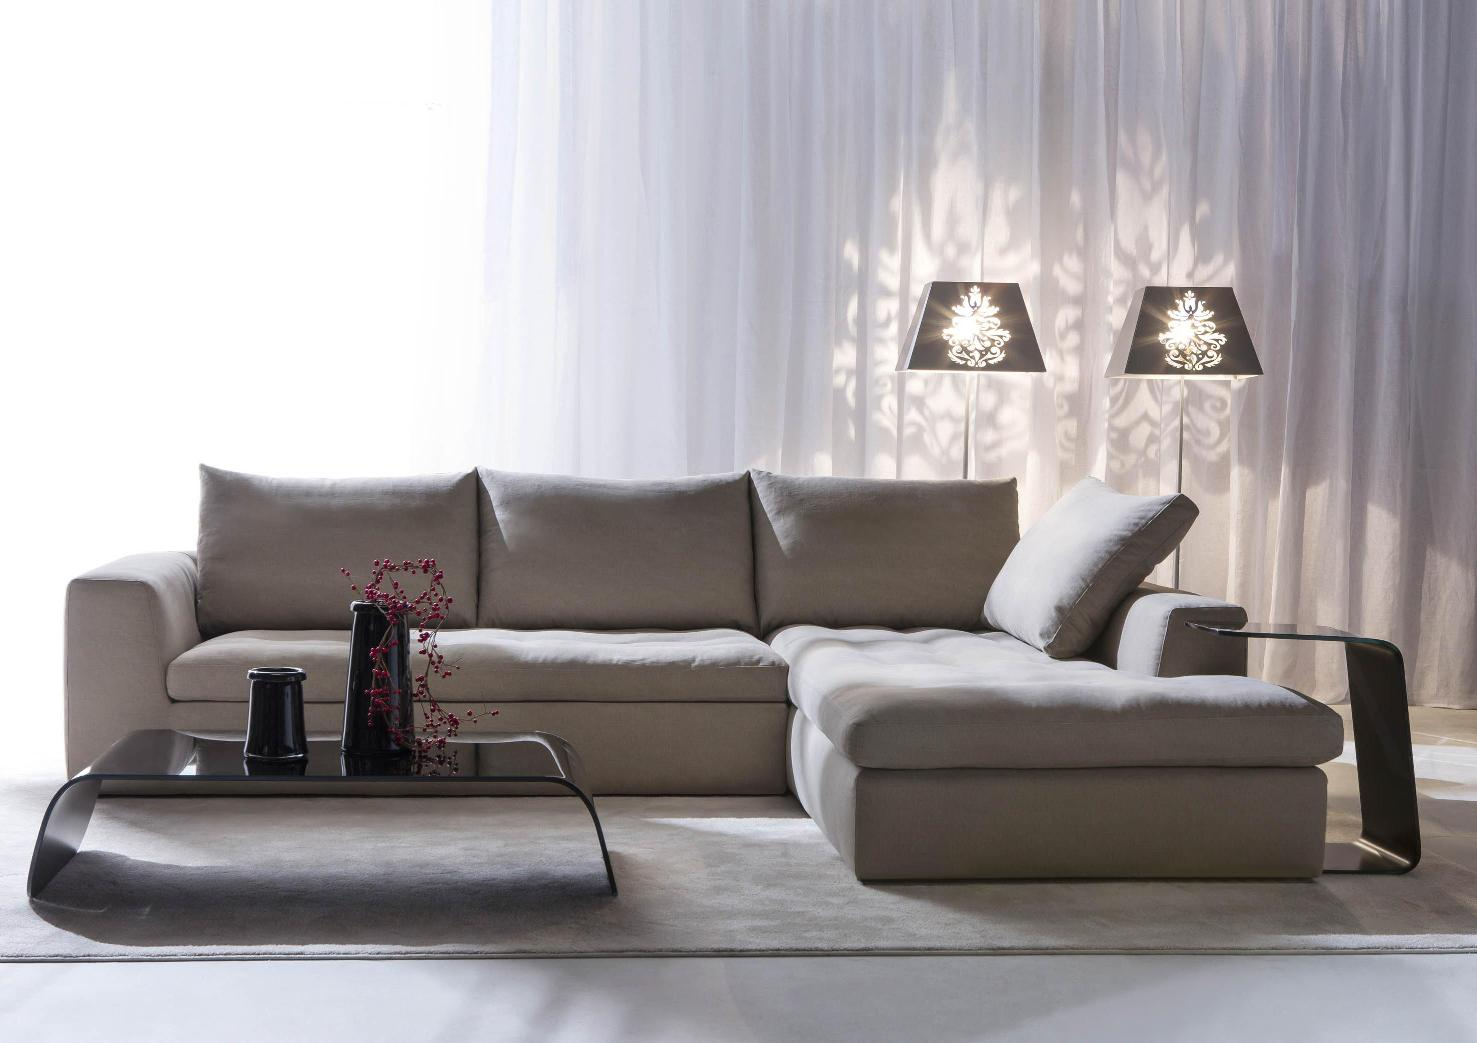 Stunning creative sofa designs and styles that inspire 15 for Creative sofa designs